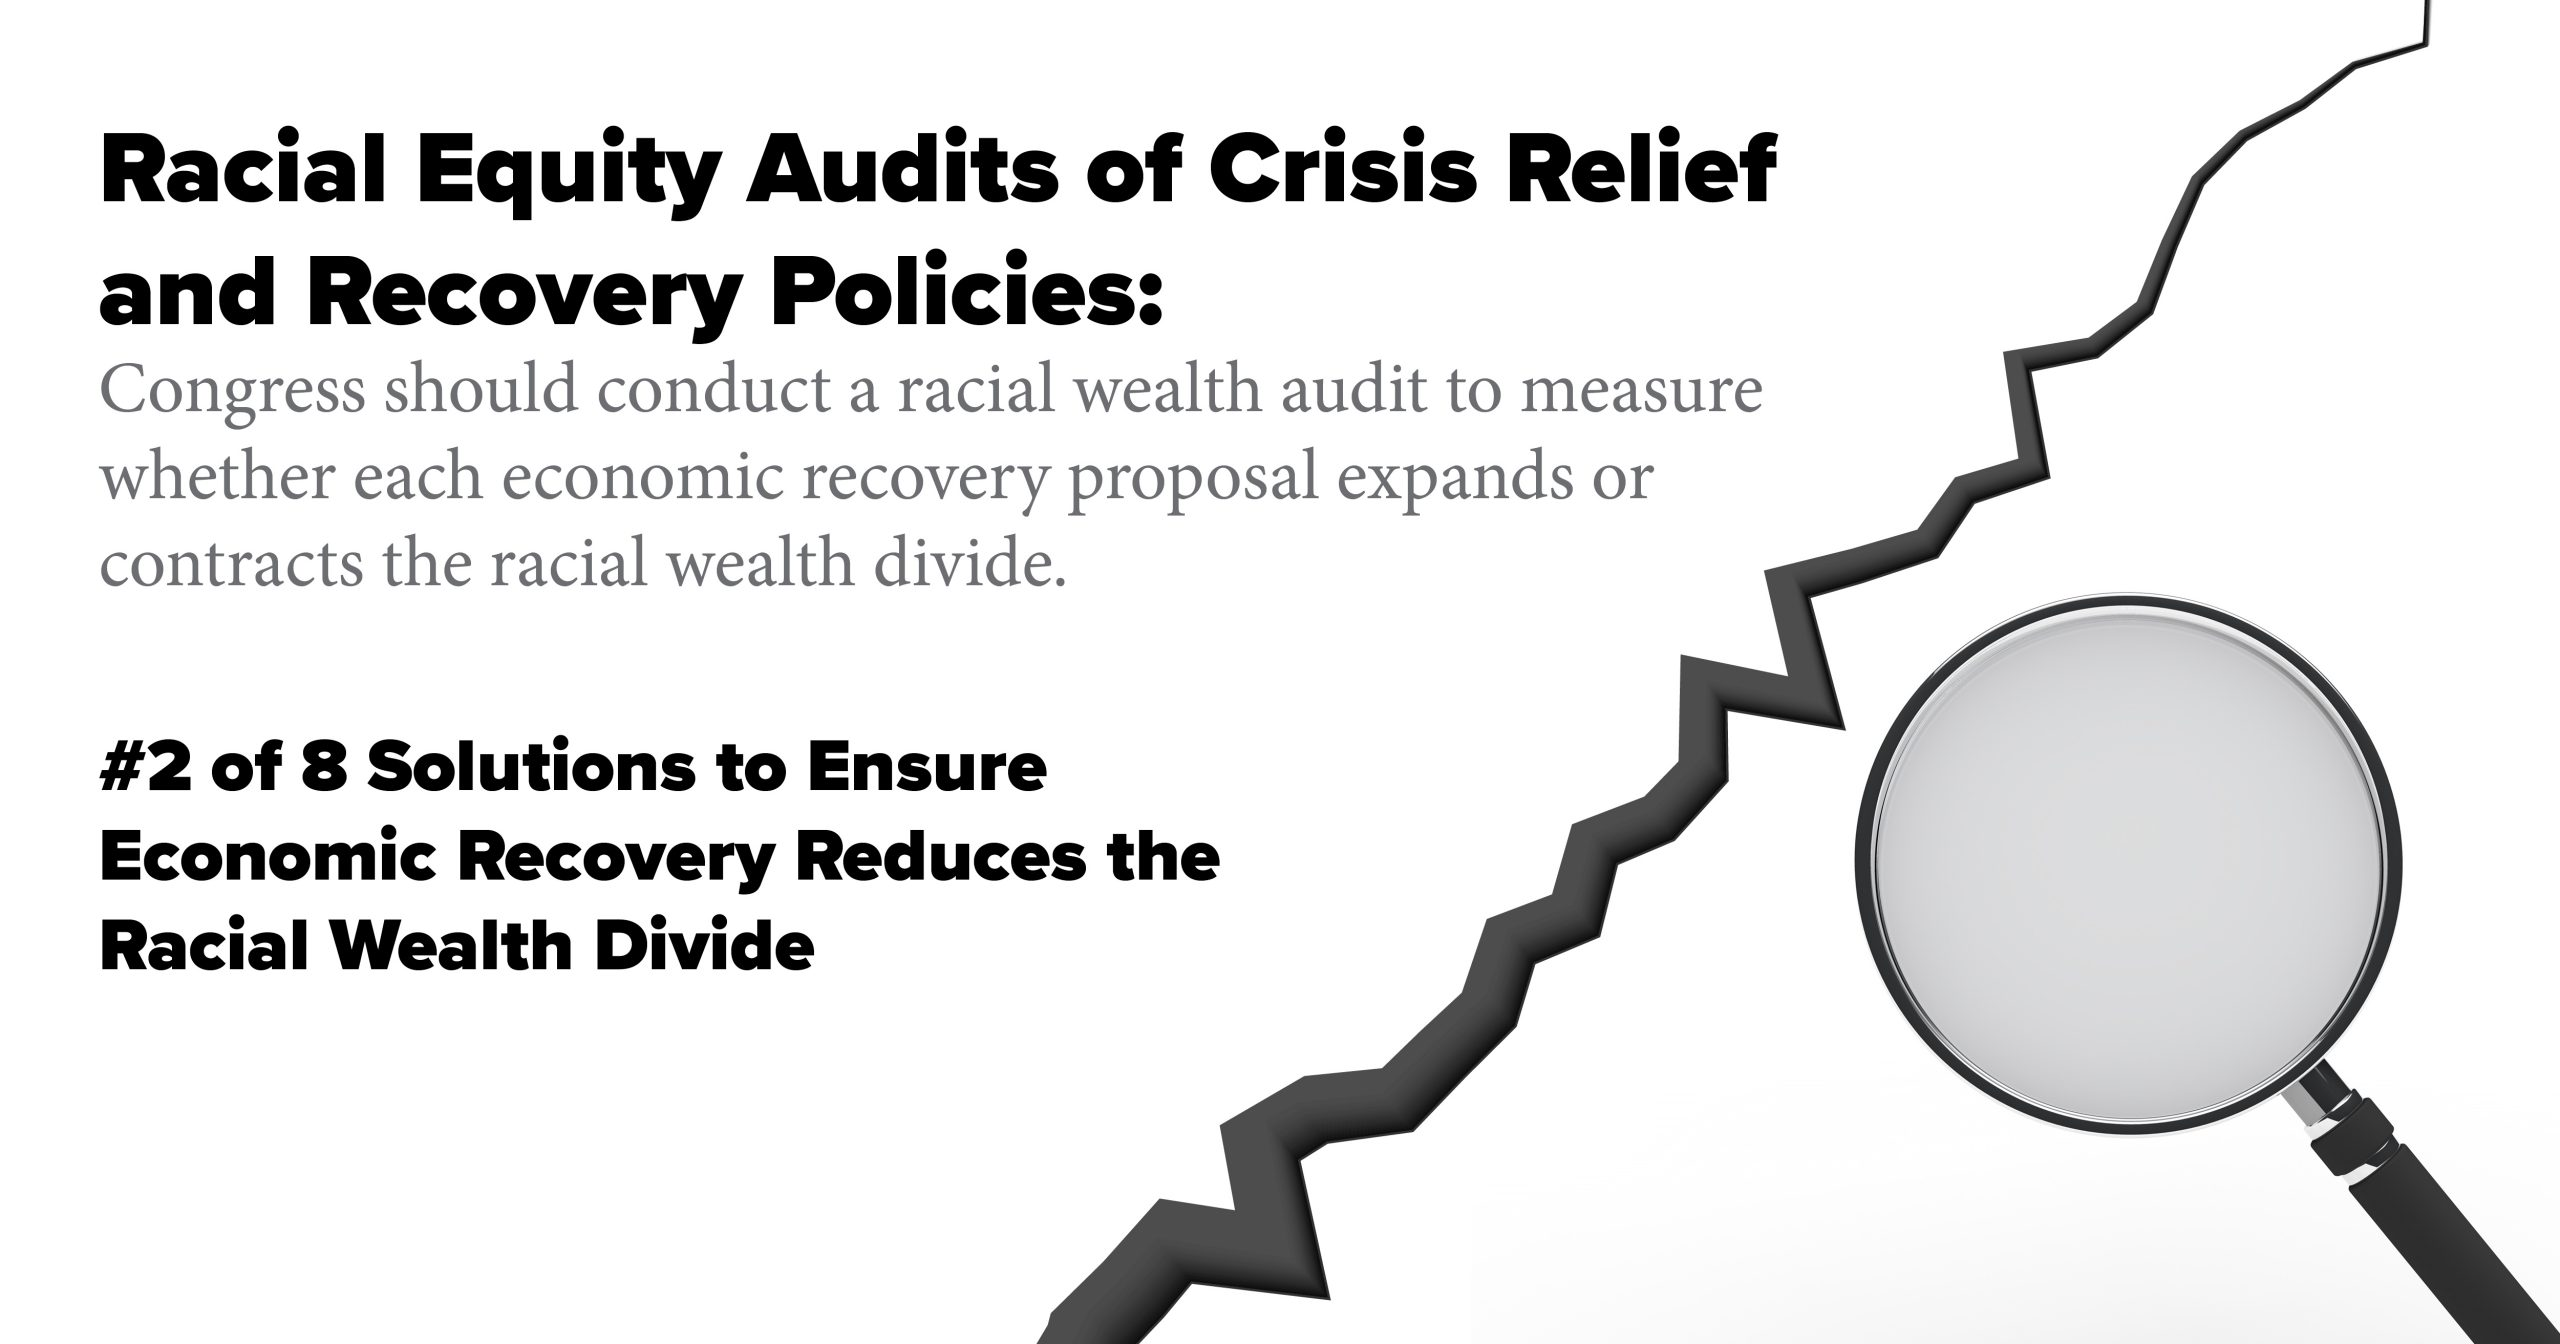 Racial Equity Audits of Crisis Relief and Recovery Policies: Congress should conduct a racial wealth audit to measure whether each economic recovery proposal expands or contracts the racial wealth divide.